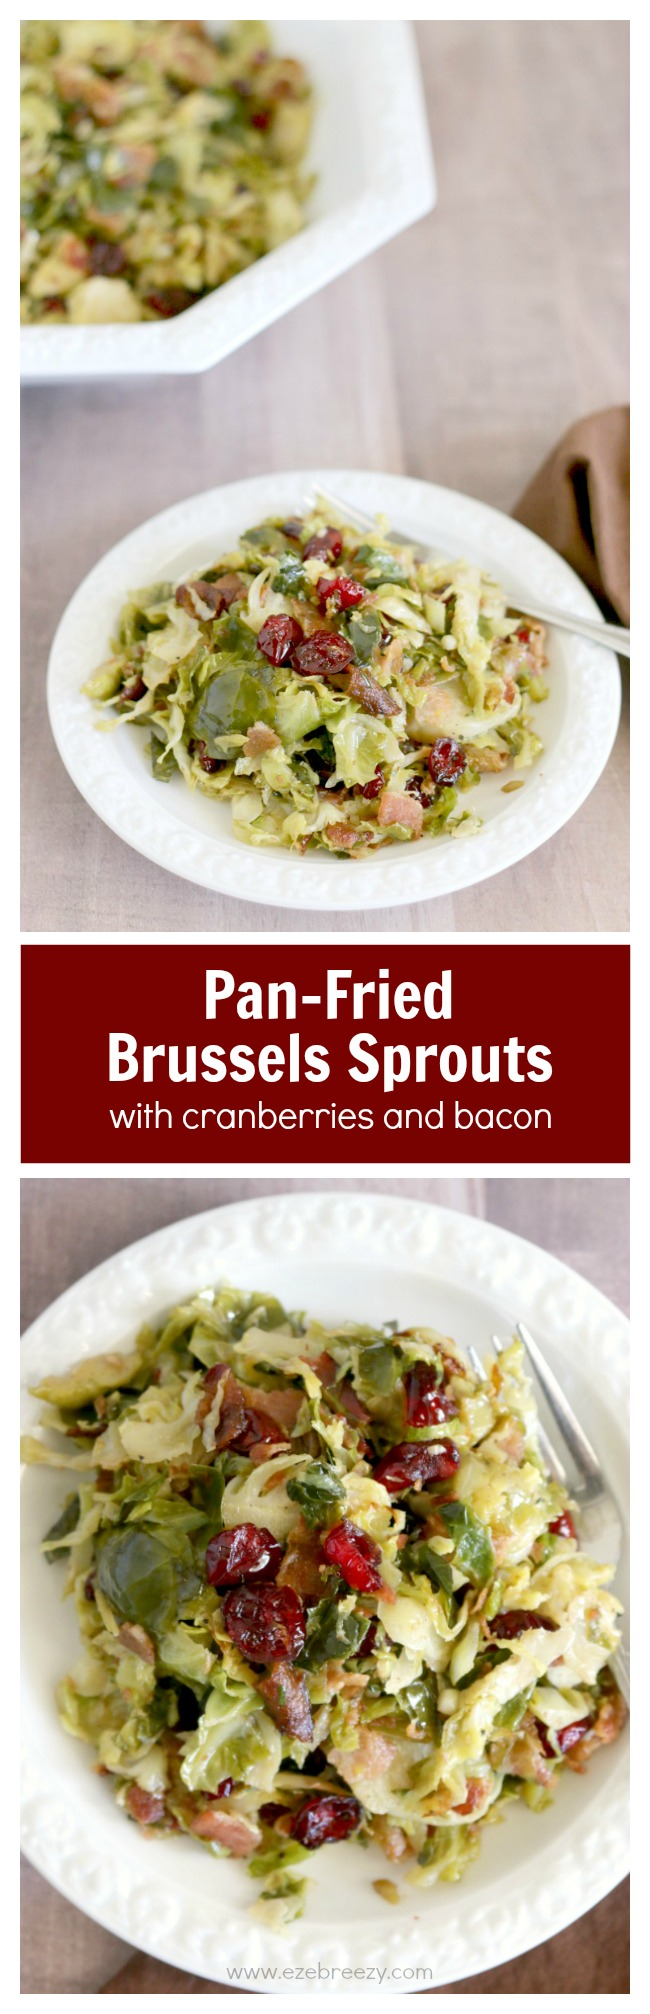 Delicious Brussels Sprouts pan-fried to perfection and tossed with sweet dried cranberries and crispy bacon; the perfect side dish for your next holiday gathering | ezebreezy.com | #Thanksgiving #Thanksgivingrecipes #sidedishes #recipes #easyrecipes #Christmasrecipes #Christmas